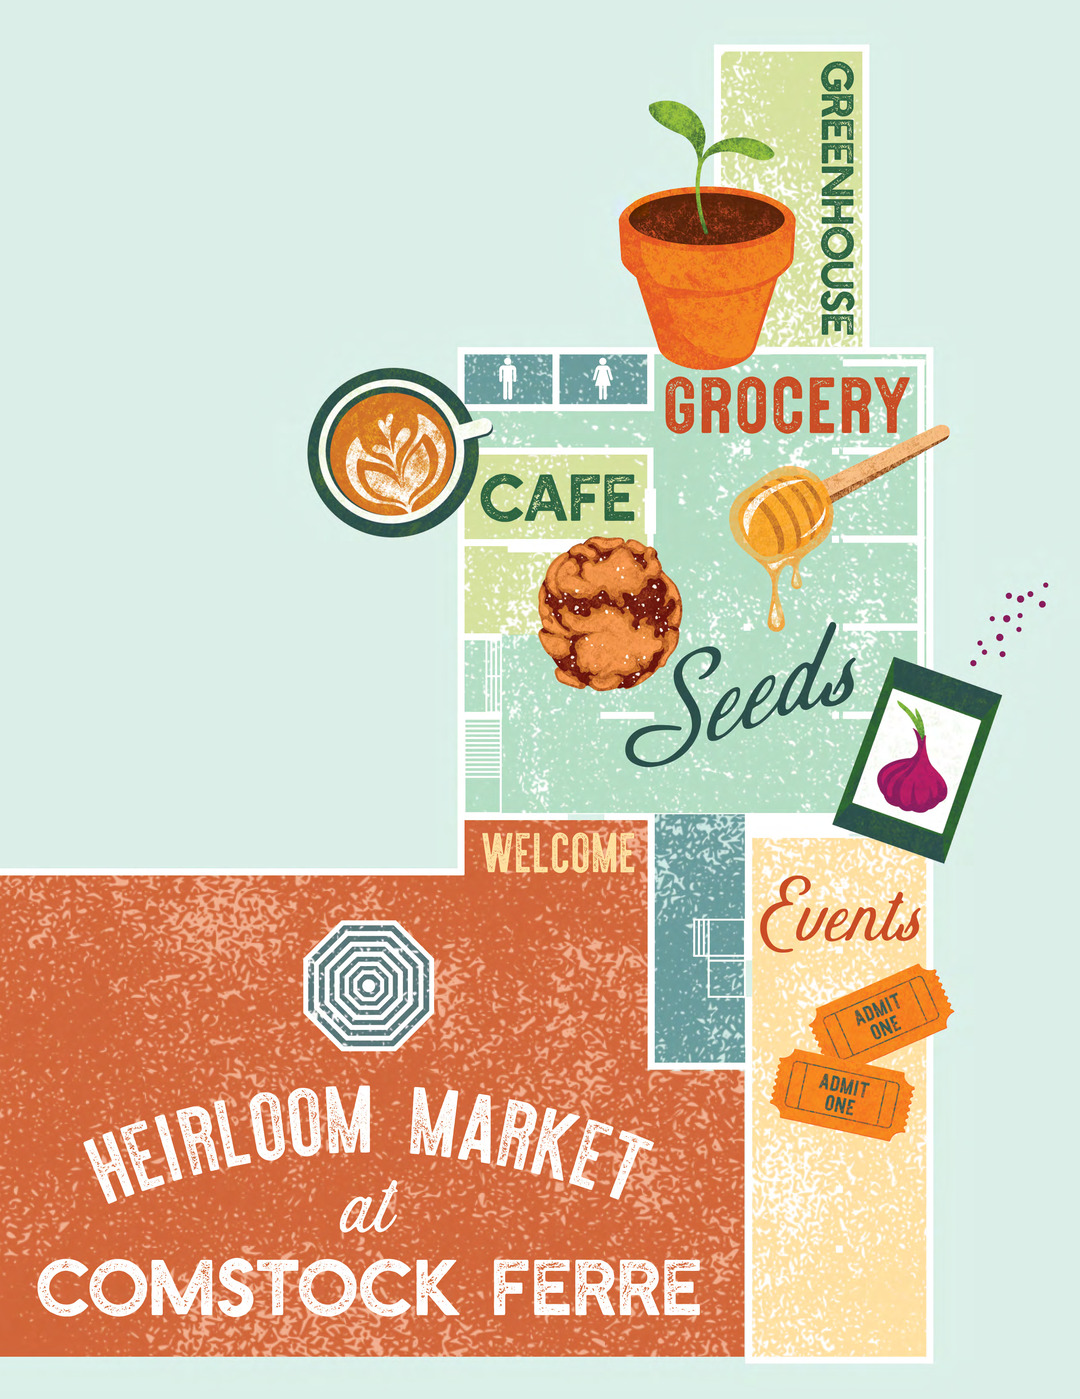 Page 112 of Heirloom Market: Planting the Seeds for Friendship, Food, and Community